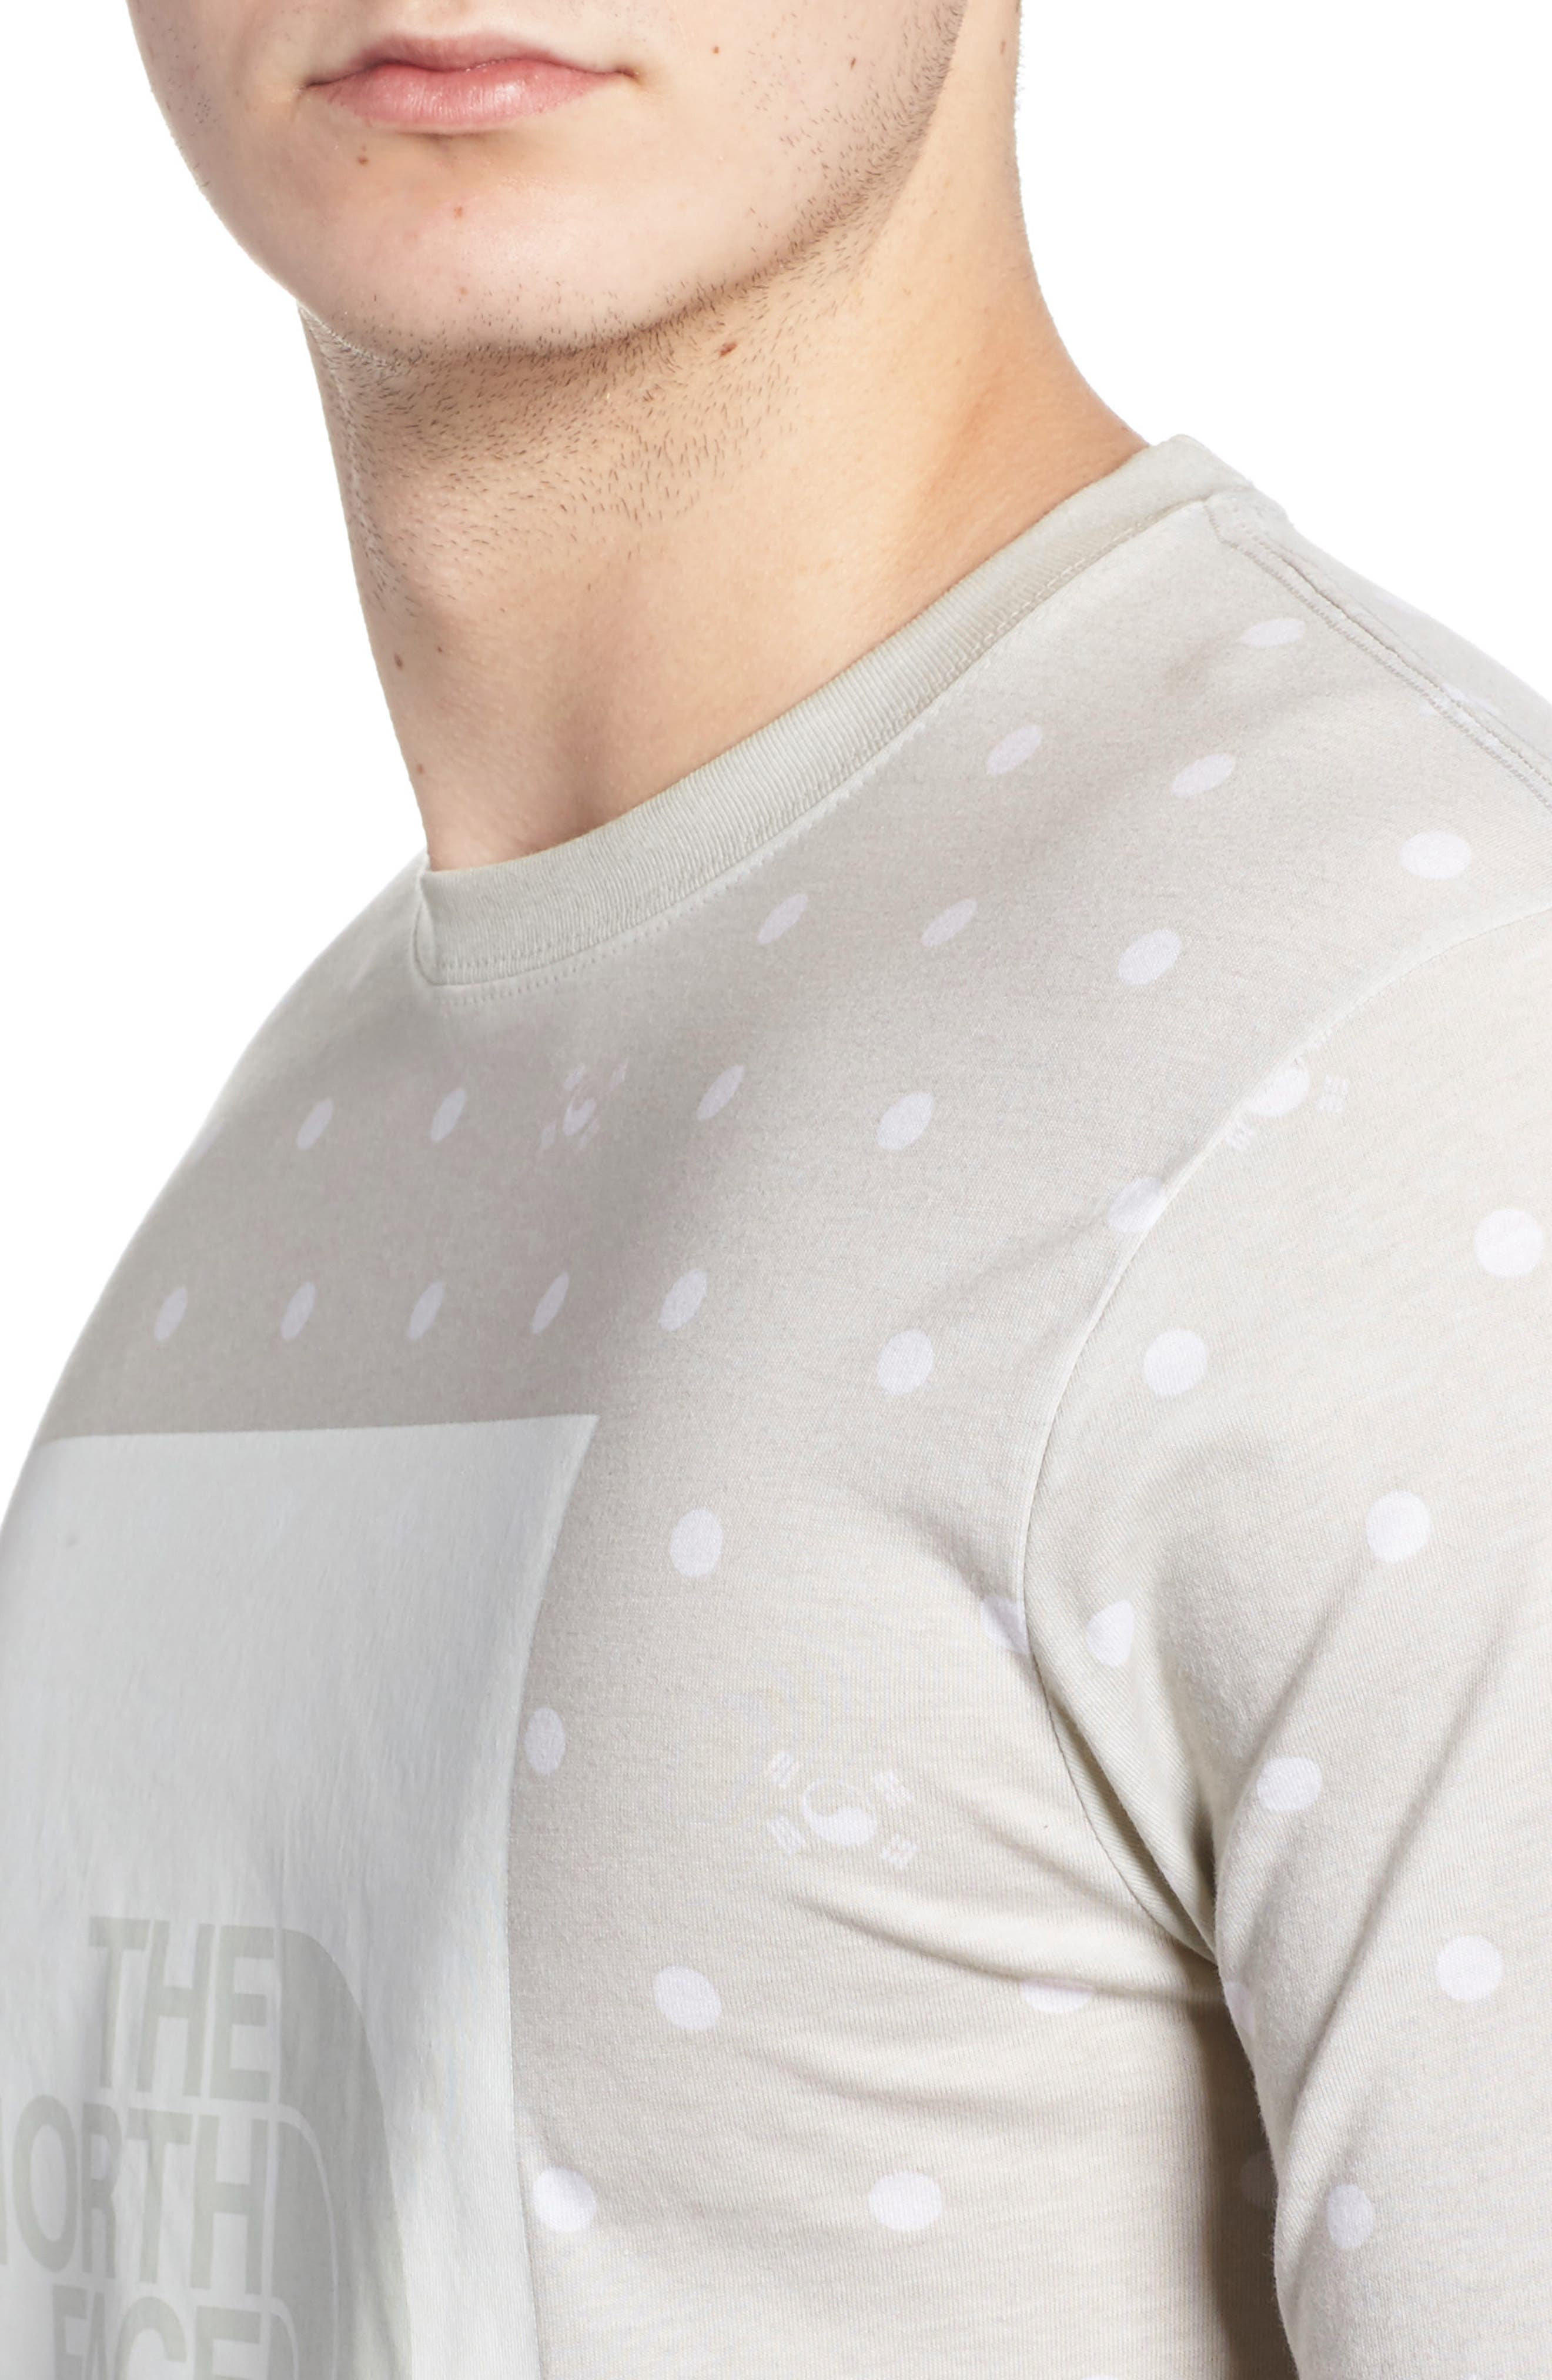 International Collection Star Print T-Shirt,                             Alternate thumbnail 4, color,                             030